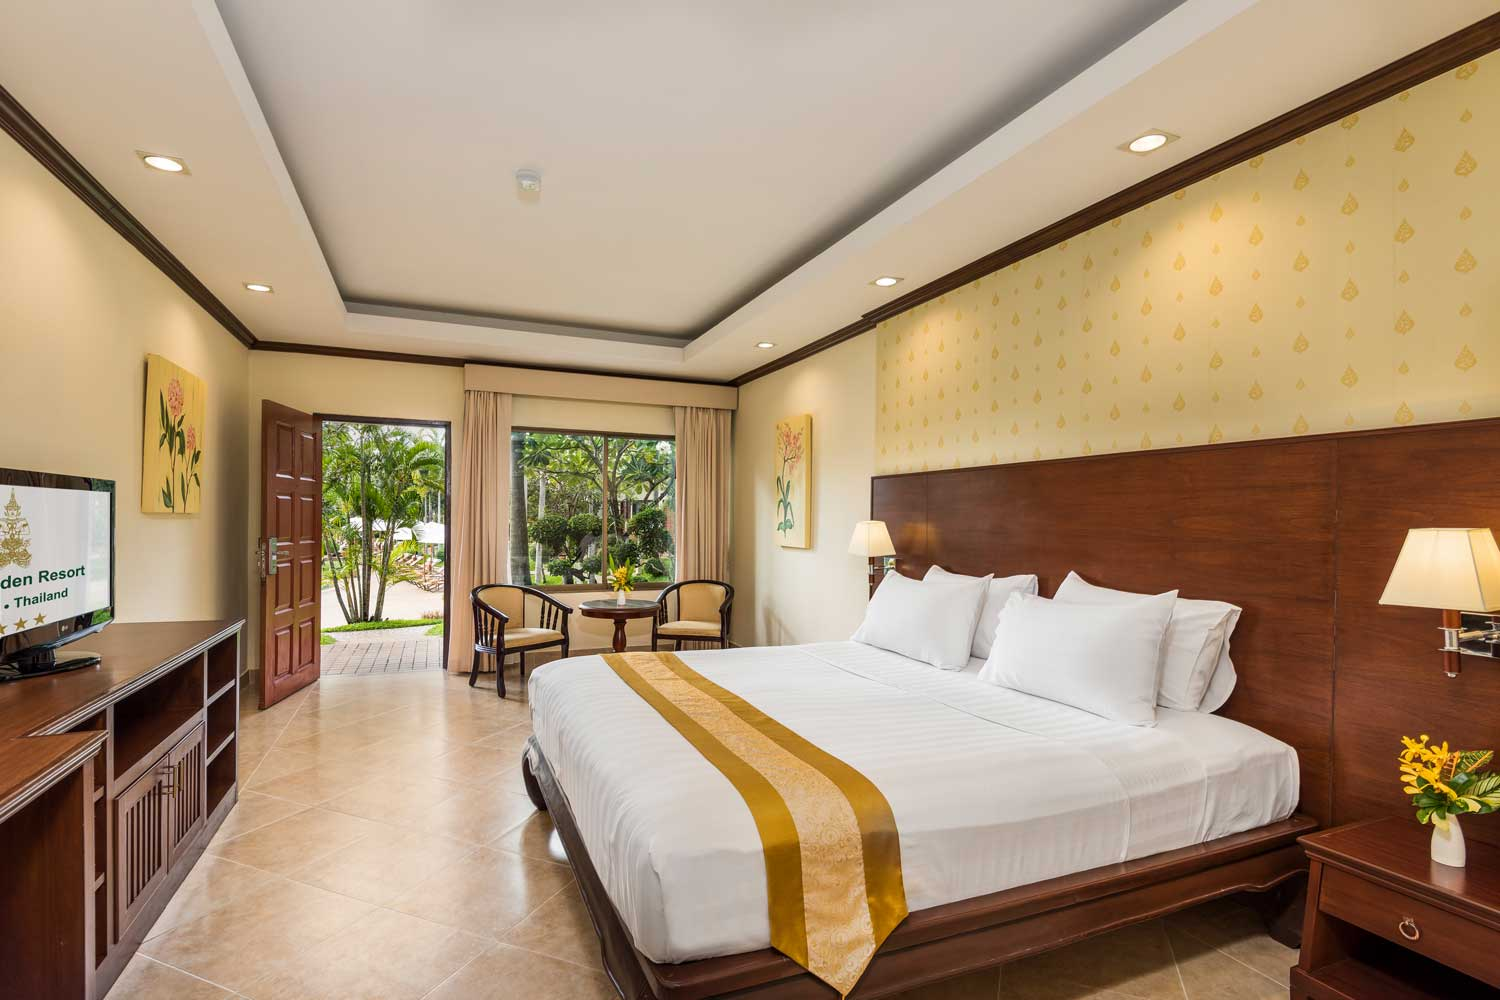 Deluxe hotel room with pool view of the Thai Garden Resort in Pattaya, Thailand.